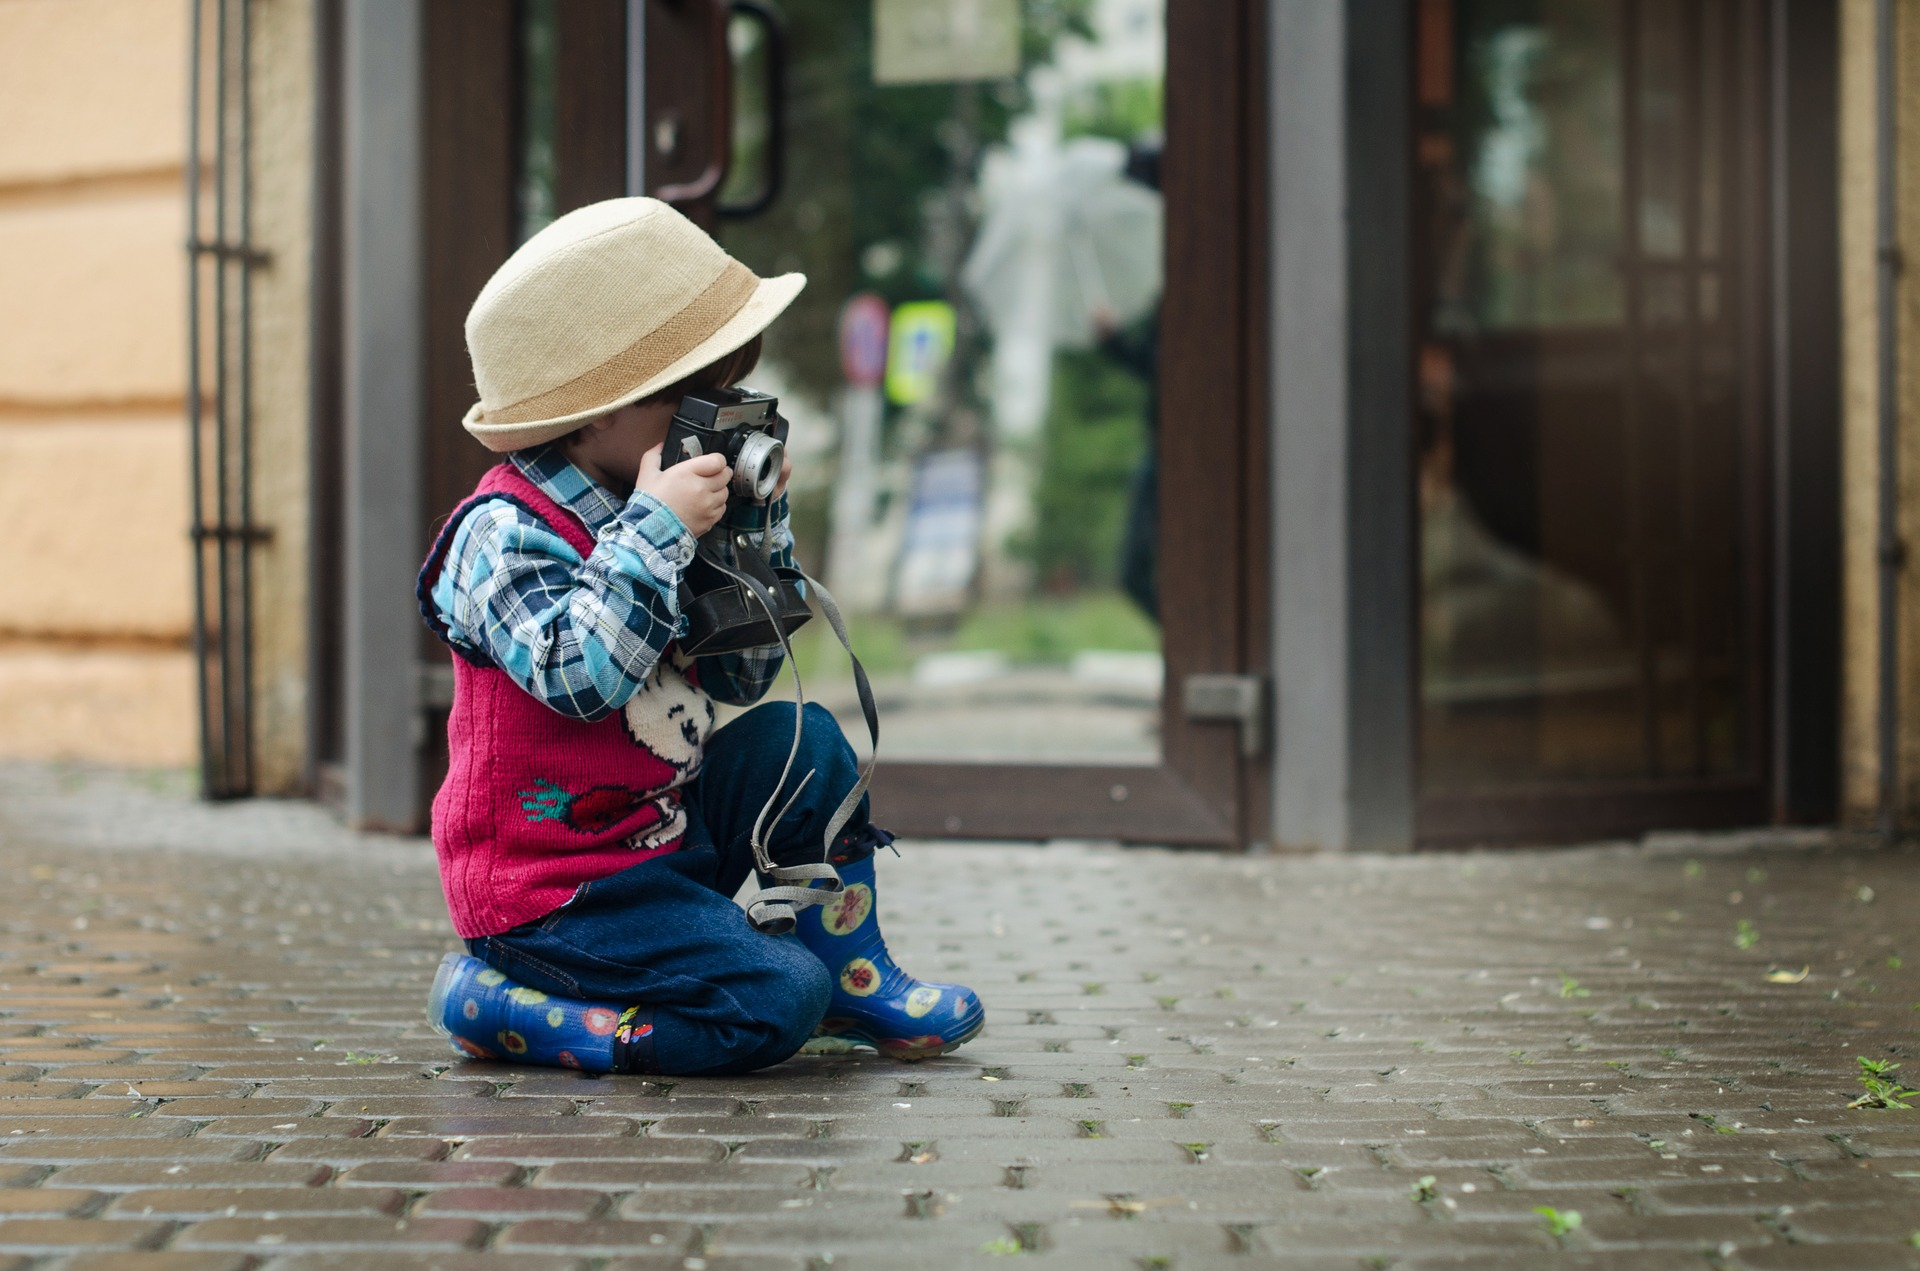 Camera Fun – Letting Kids Explore Their World With Photography